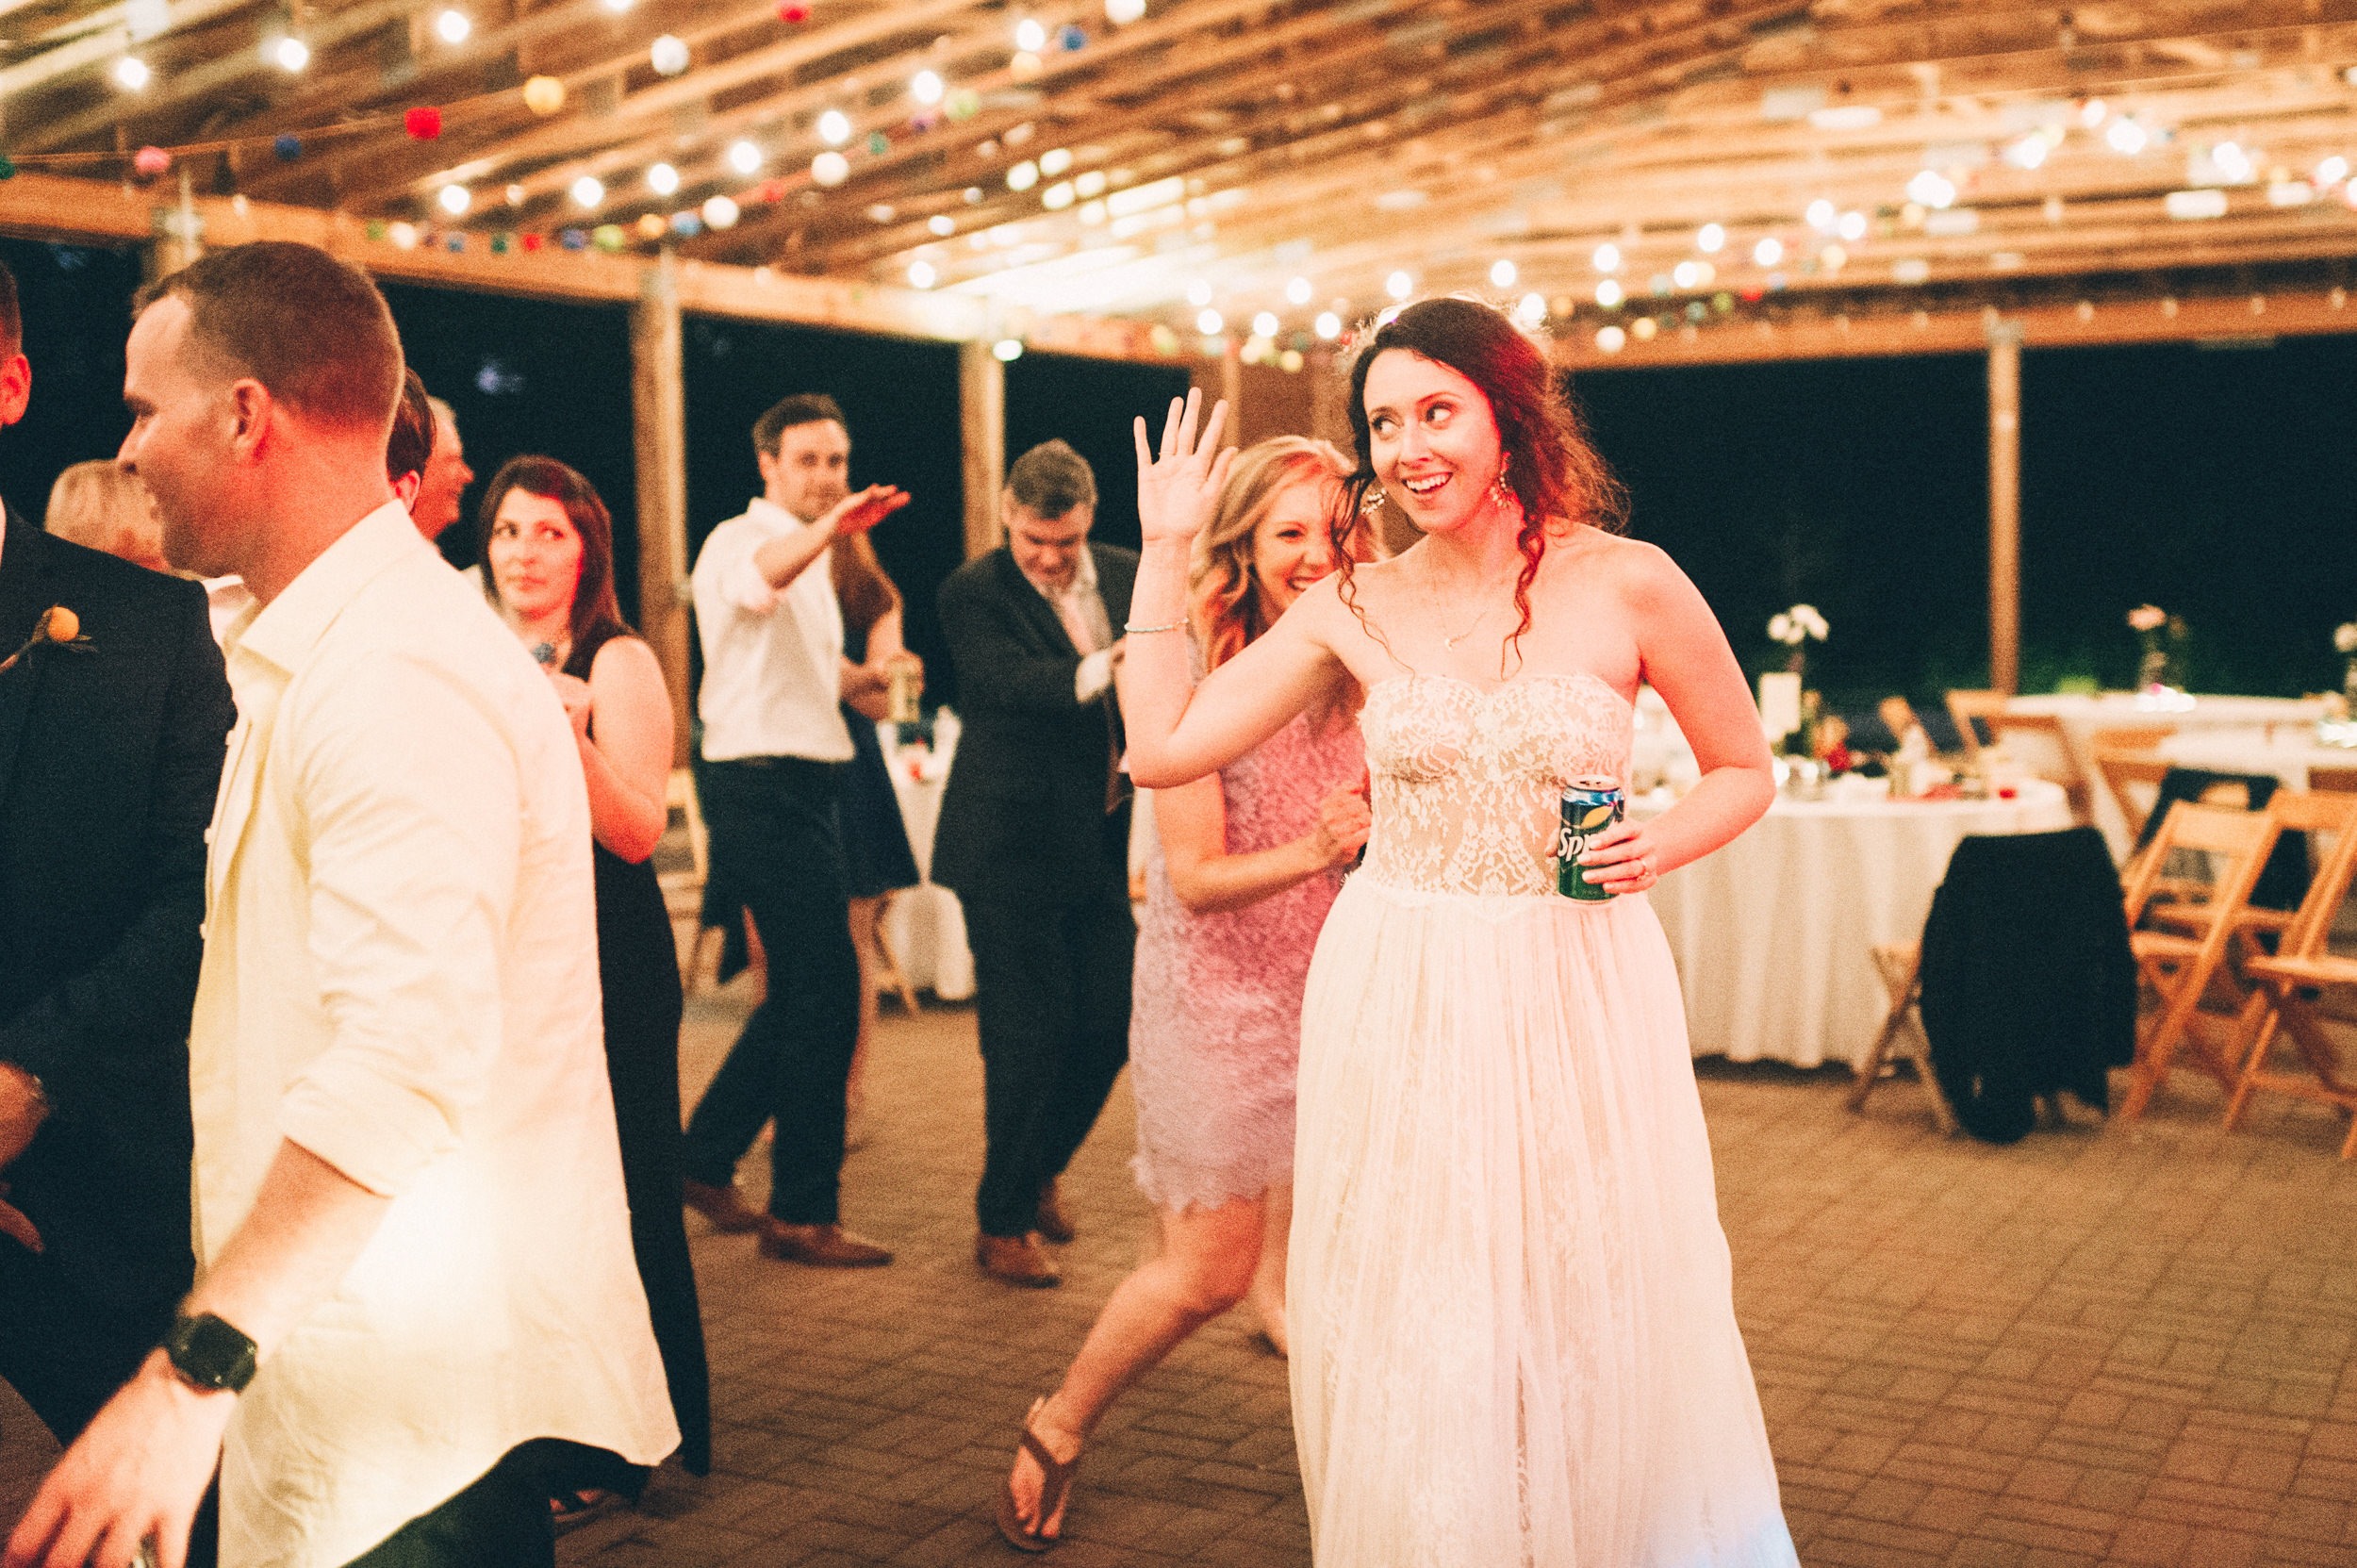 cassie-drew-wedding-farmington-sarah-katherine-davis-photography-675edit.jpg